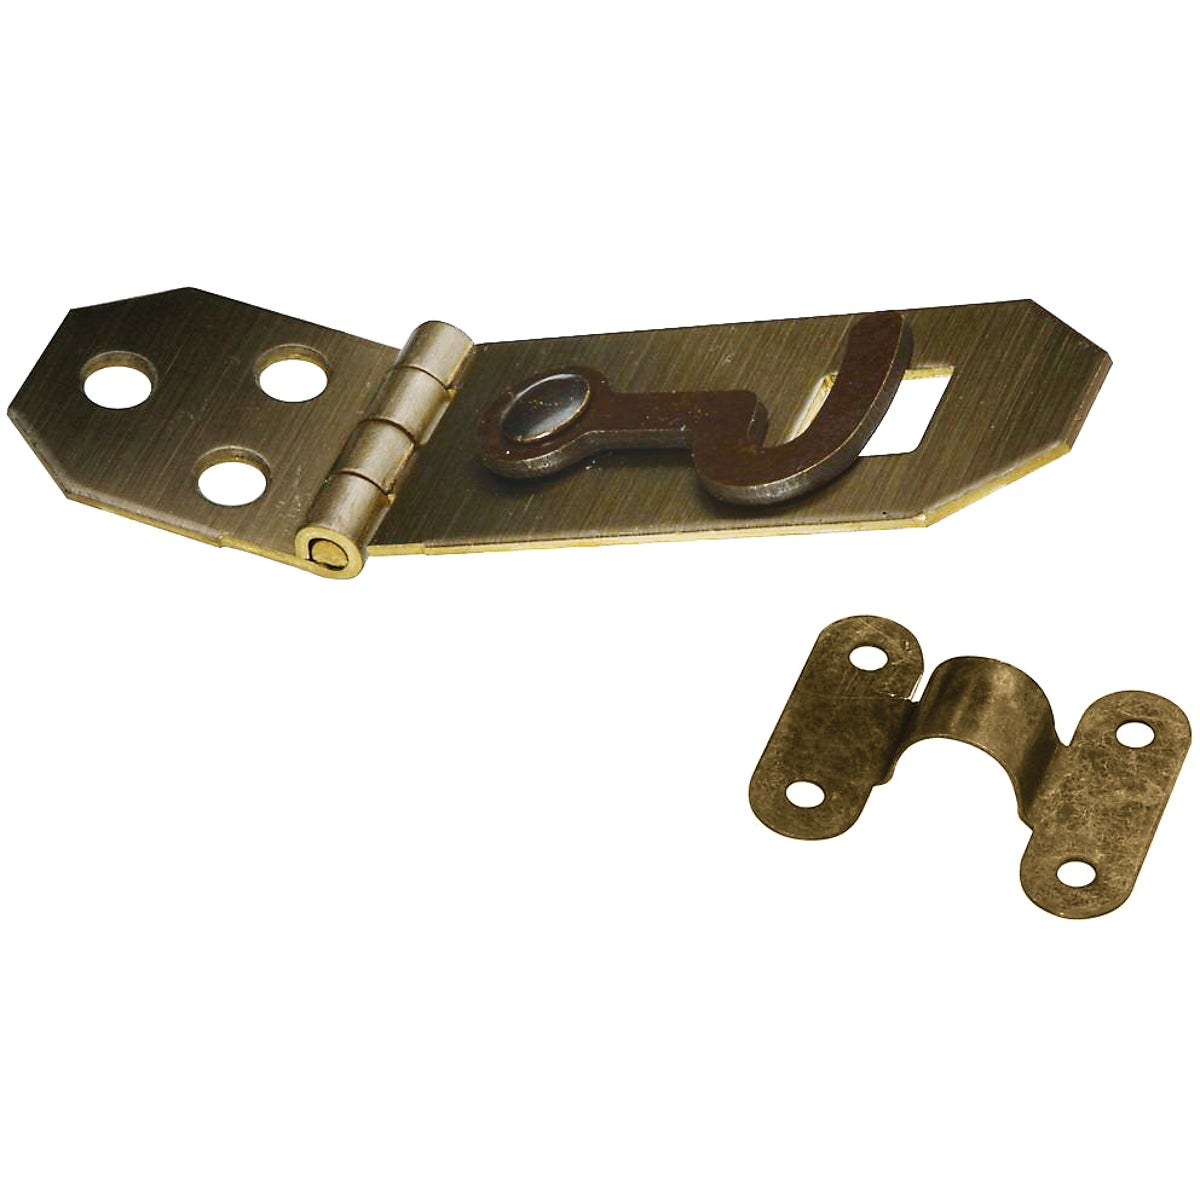 3/4X2-3/4 AB HASP - N211920 by National Mfg Co